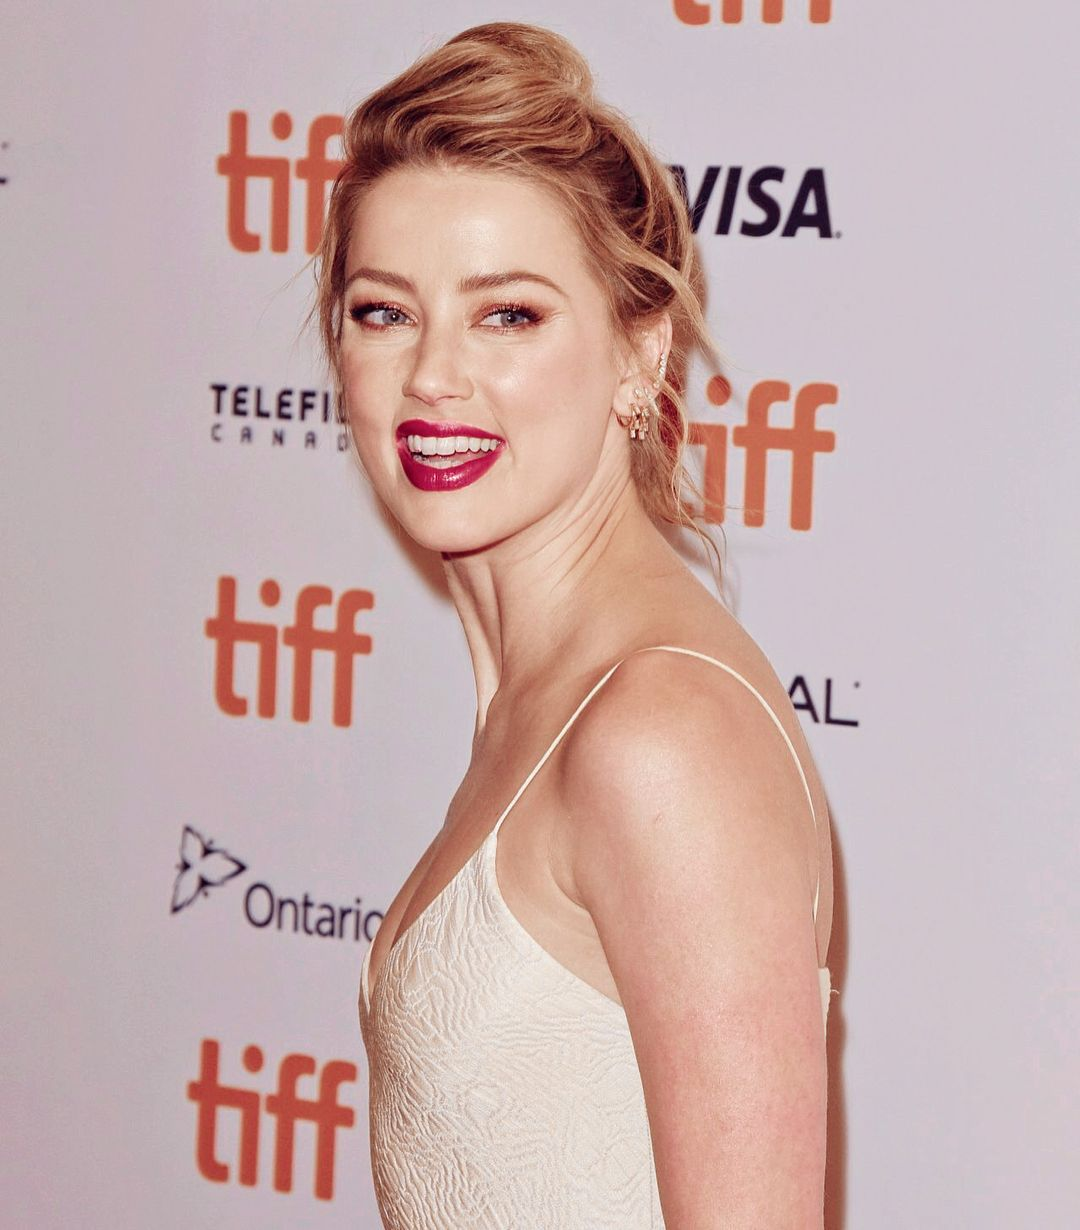 Pin By Katie Stier On Amber Heard In 2020 Amber Heard Photos Amber Heard Amber Heard Feet